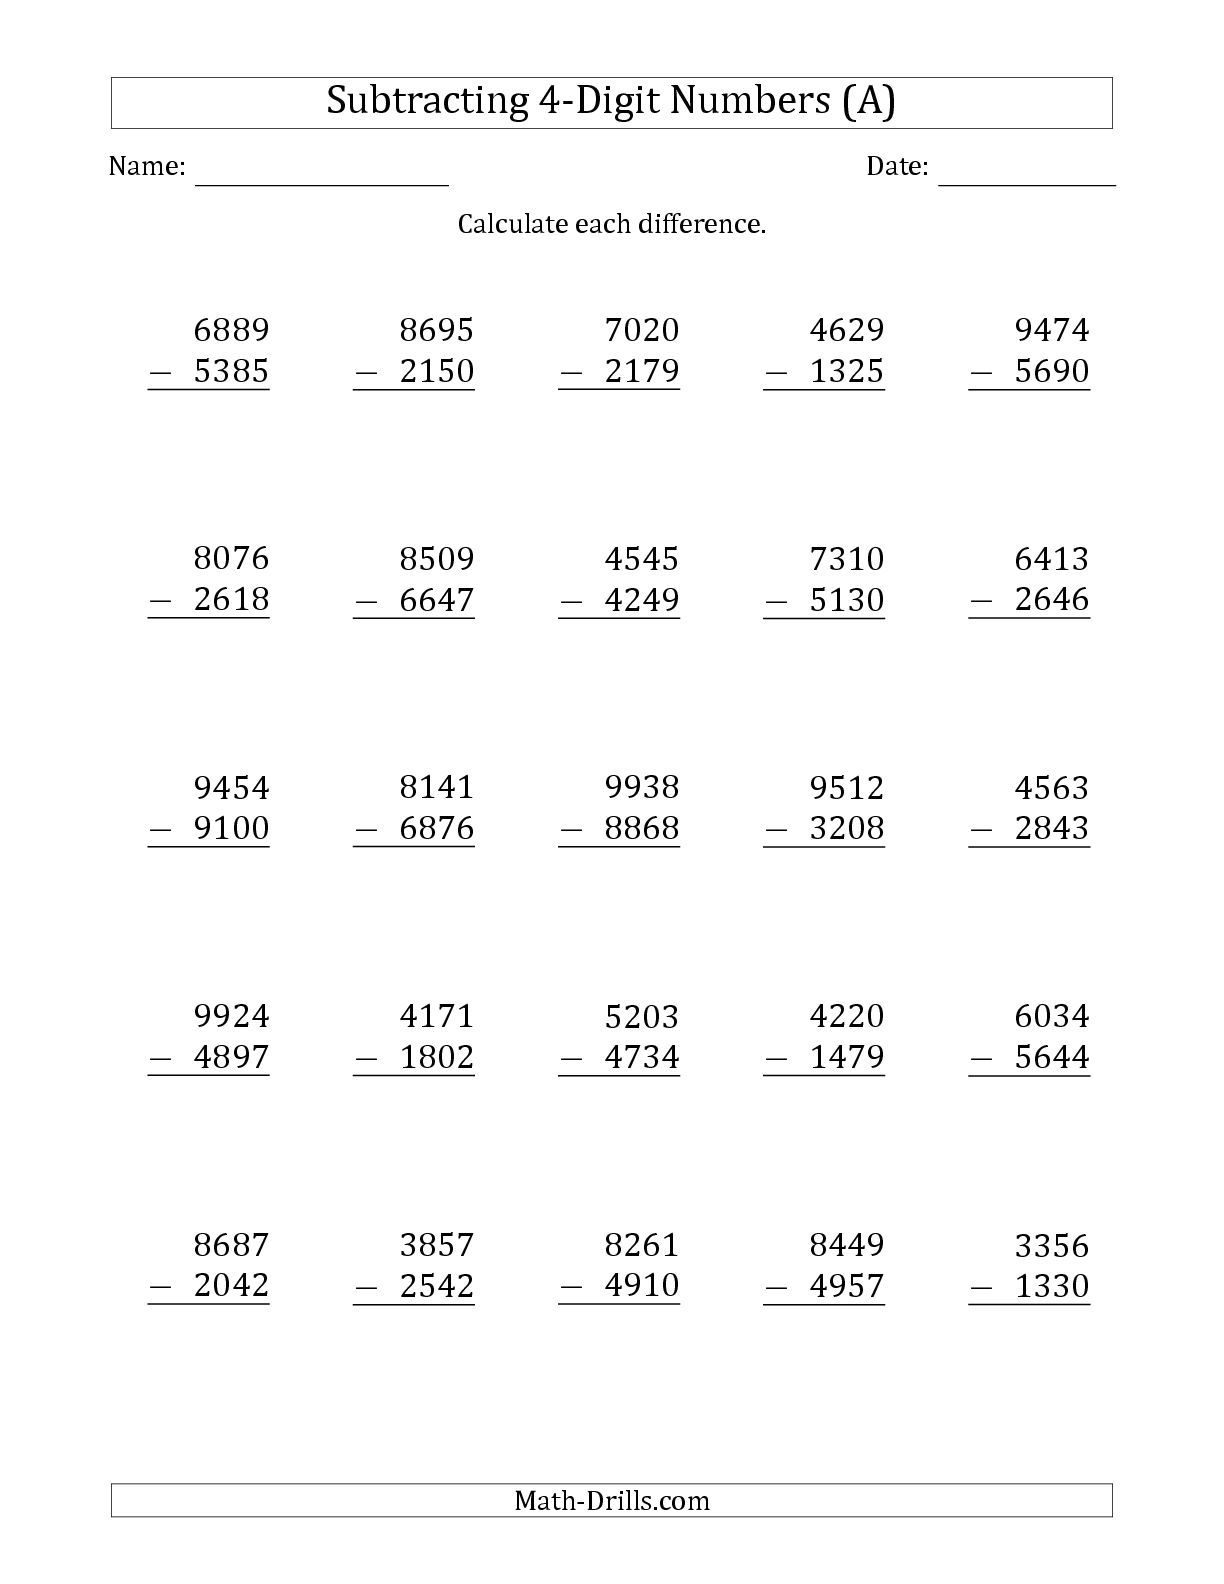 The 4-Digit Minus 4-Digit Subtraction (A) math worksheet ...